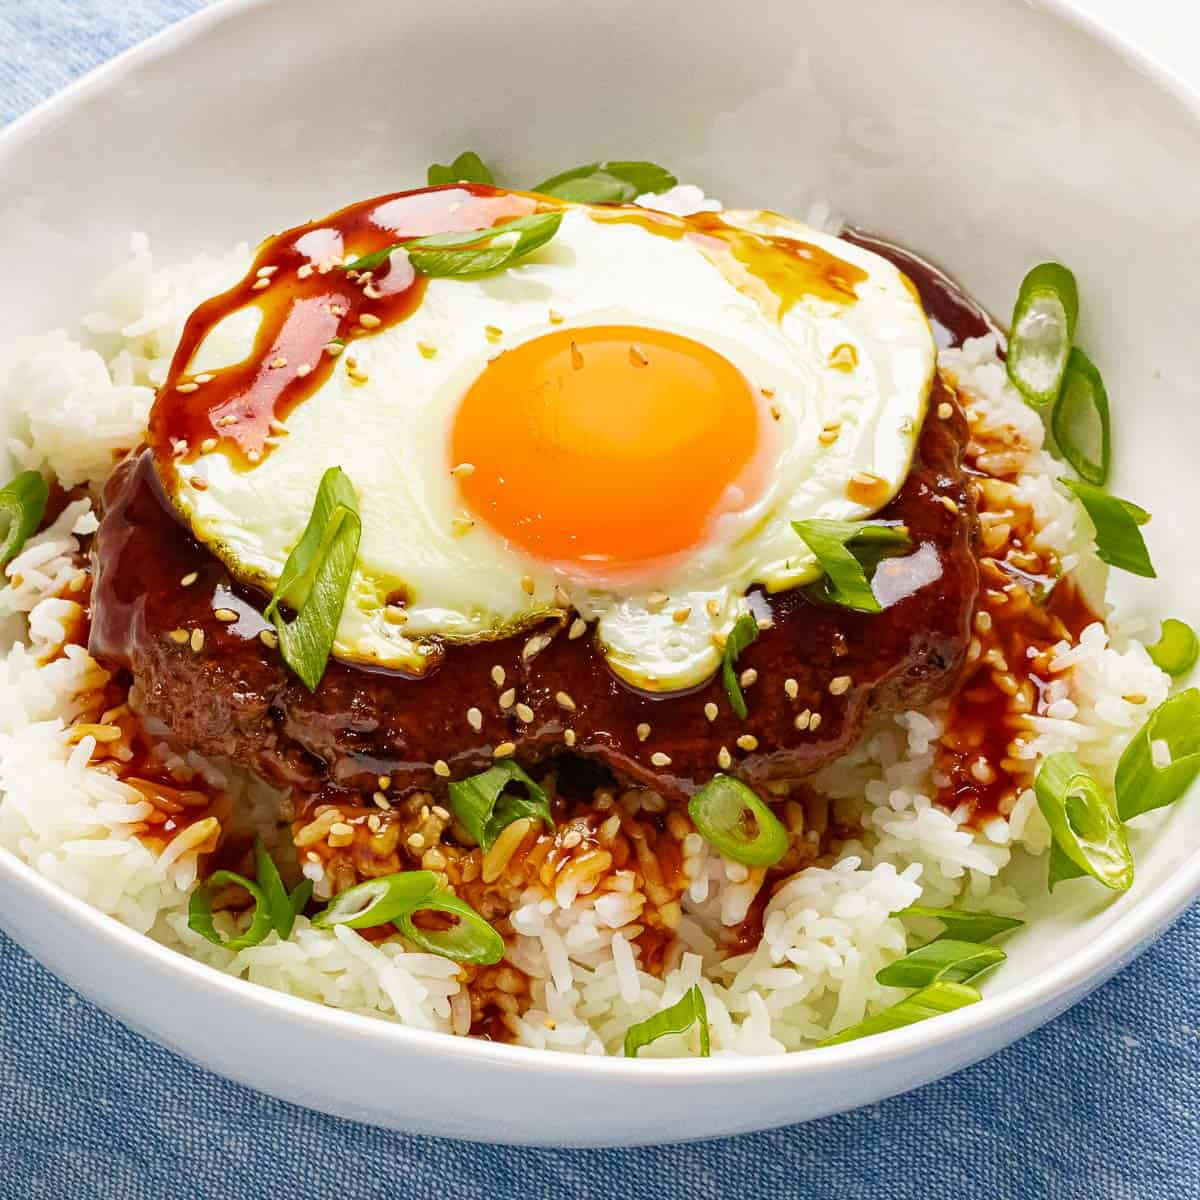 Loco moco made with a juicy beef burger patty on top of rice with brown gravy and a sunny side up egg.